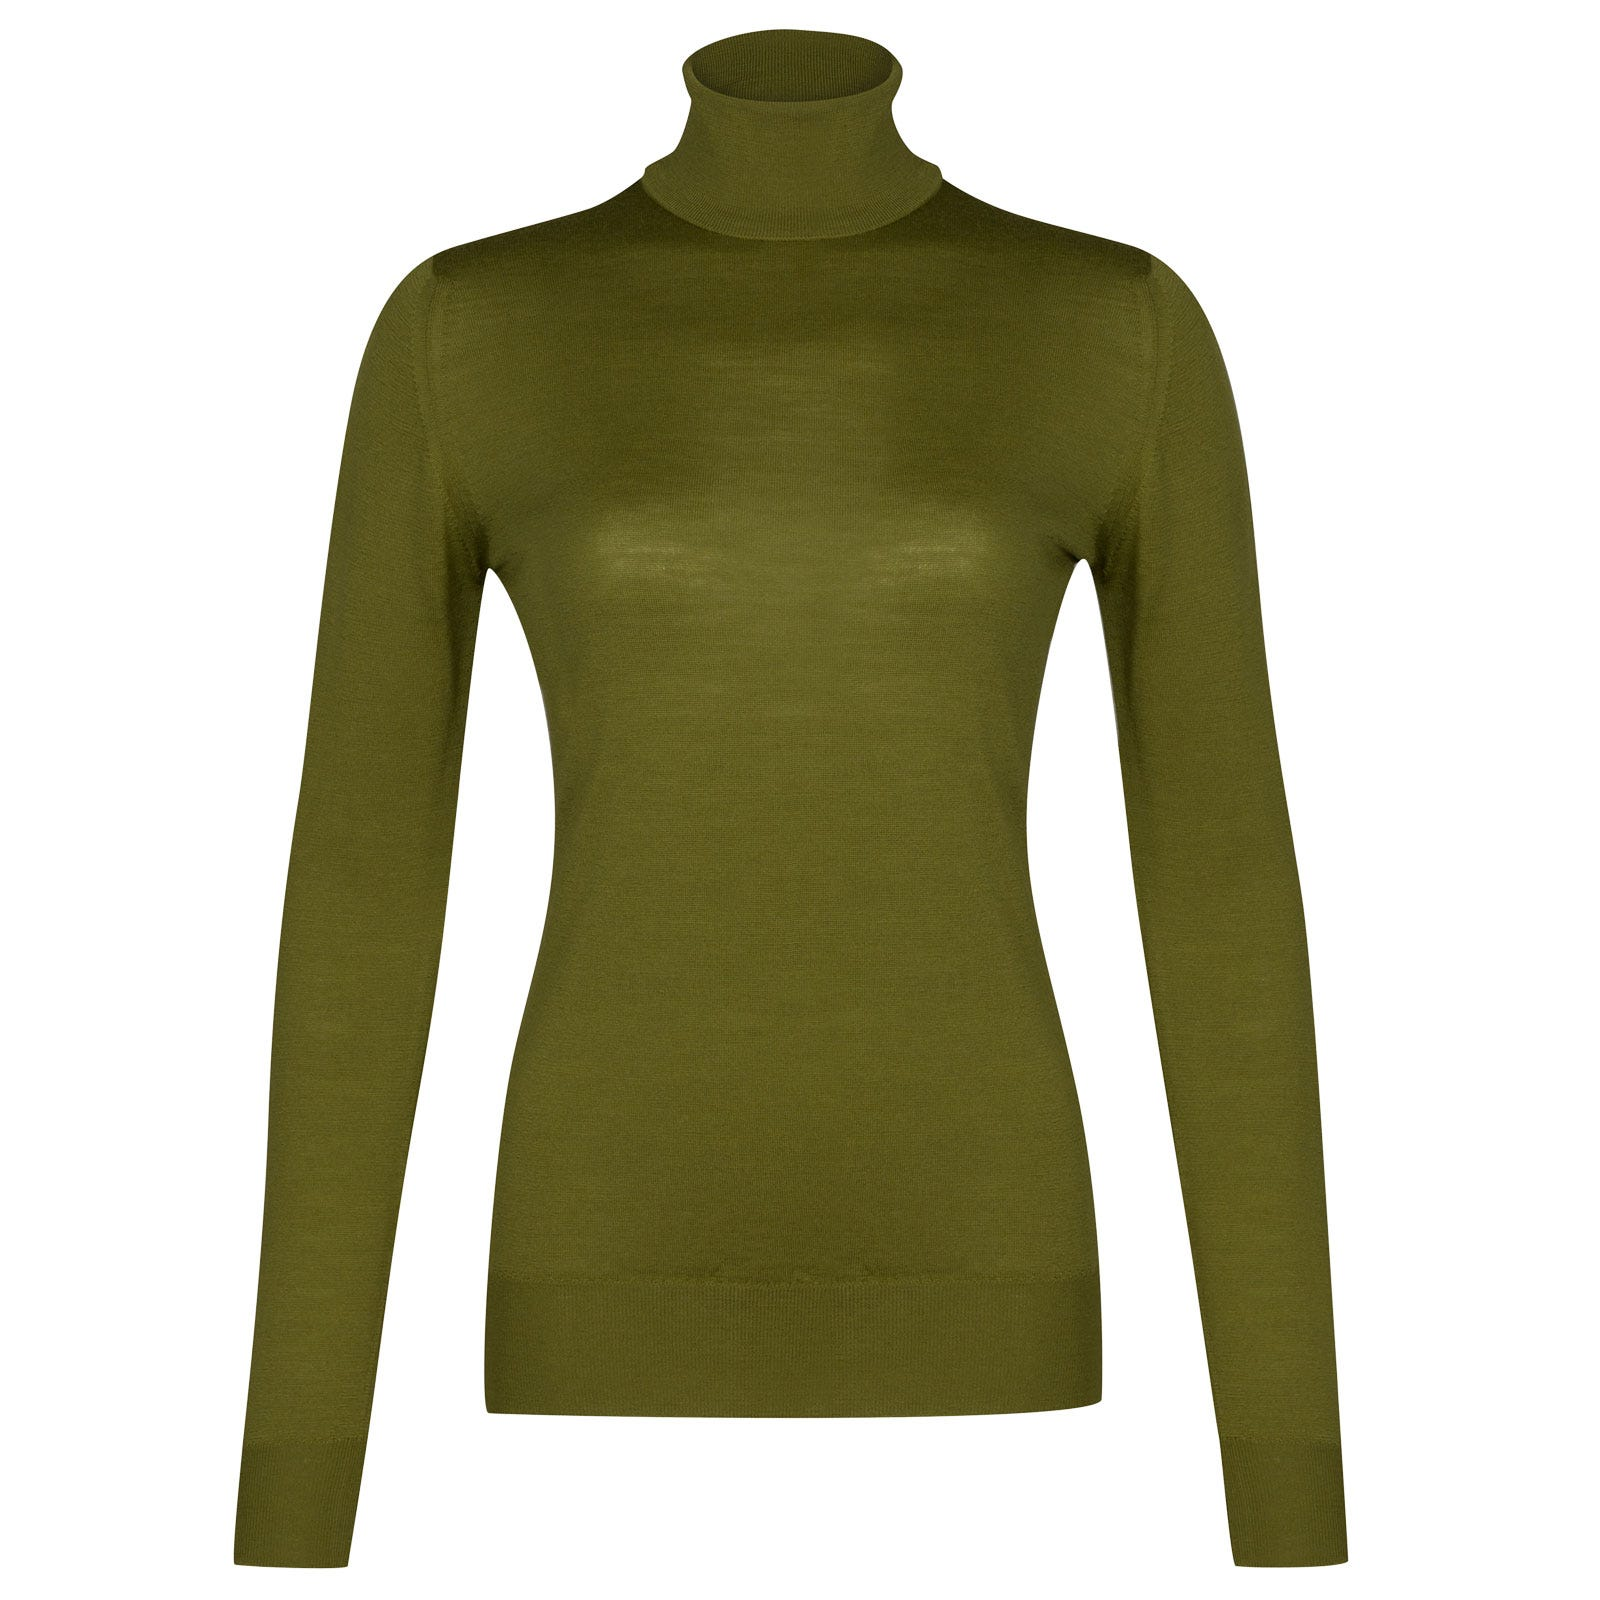 John Smedley Catkin Merino Wool Sweater in Lumsdale Green-M